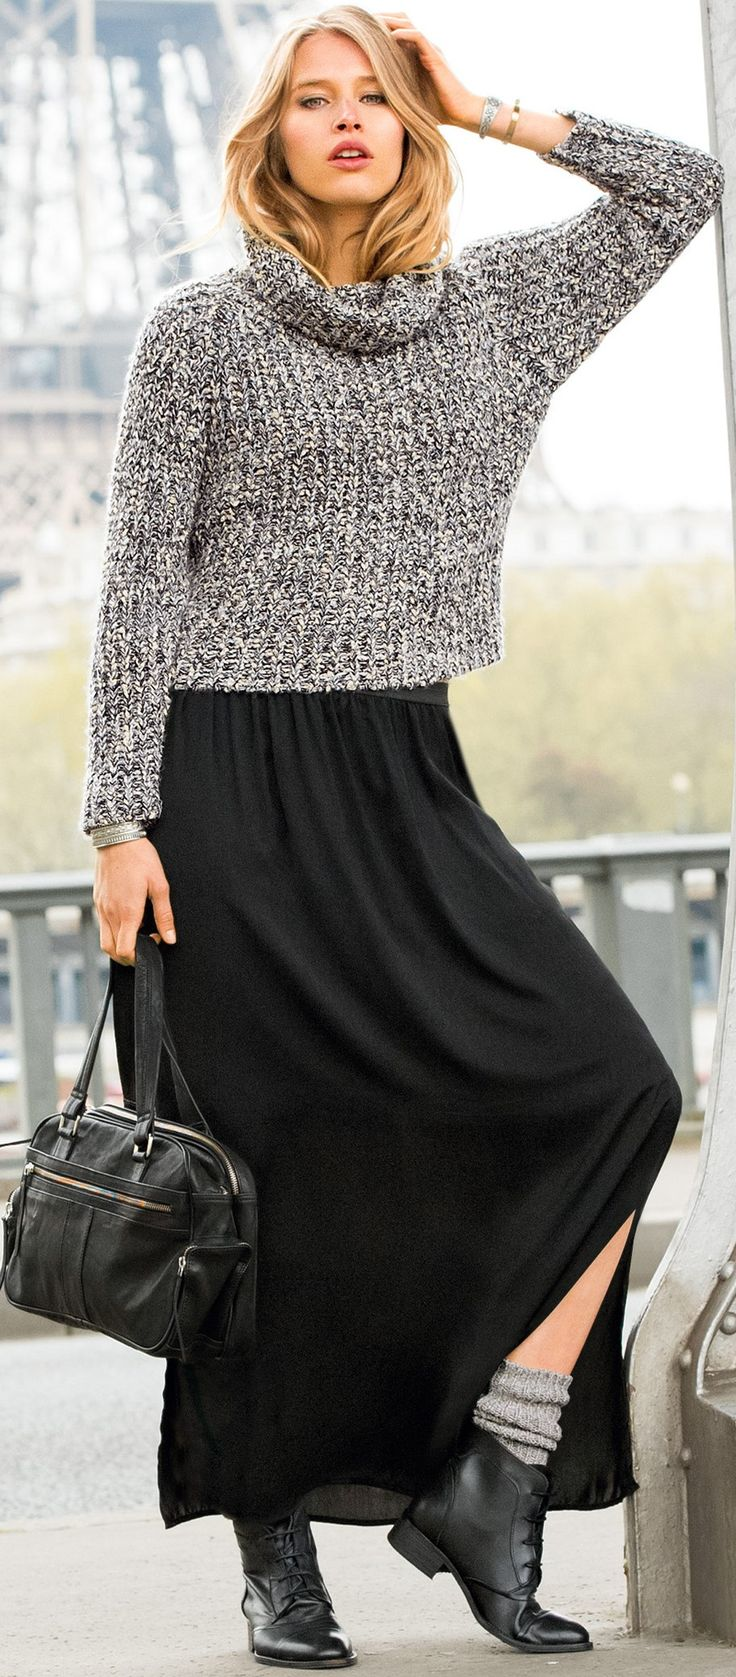 2014 Urban Fashion Trends For Women - Gray outfits for women 4 tips for wearing gray in fall winter